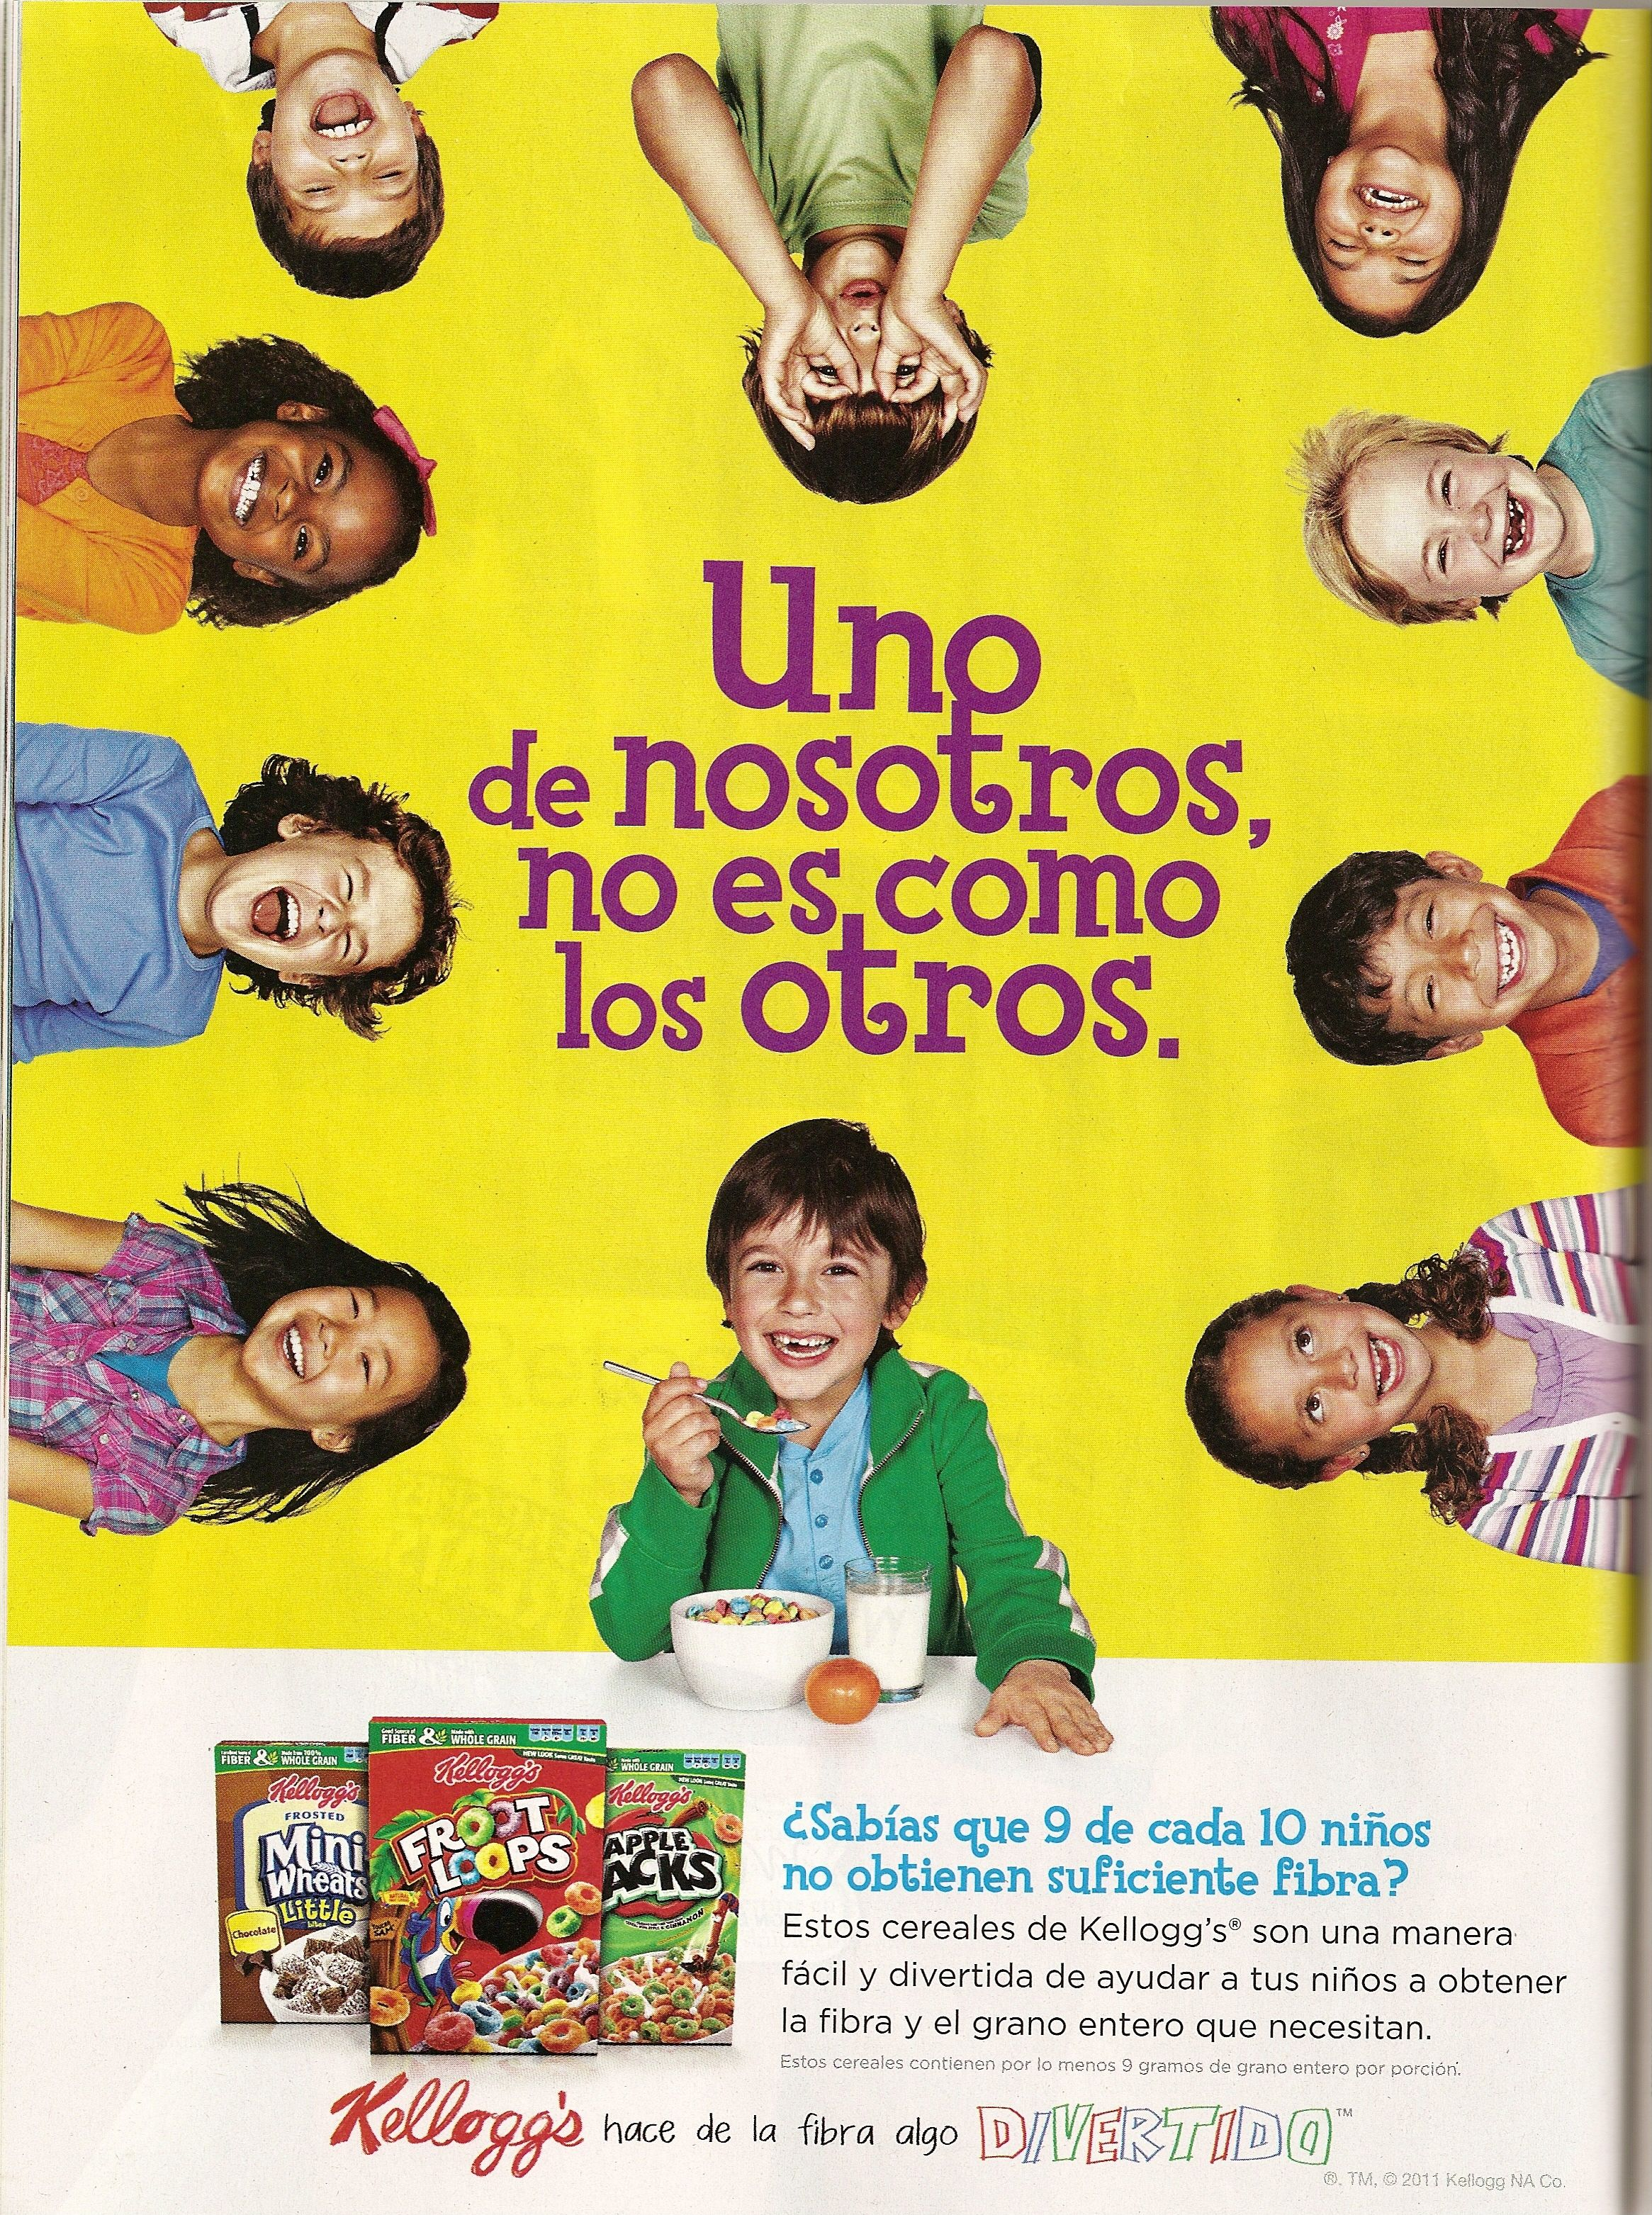 Spanish Advertisements With Commands 35378   RIMEDIA